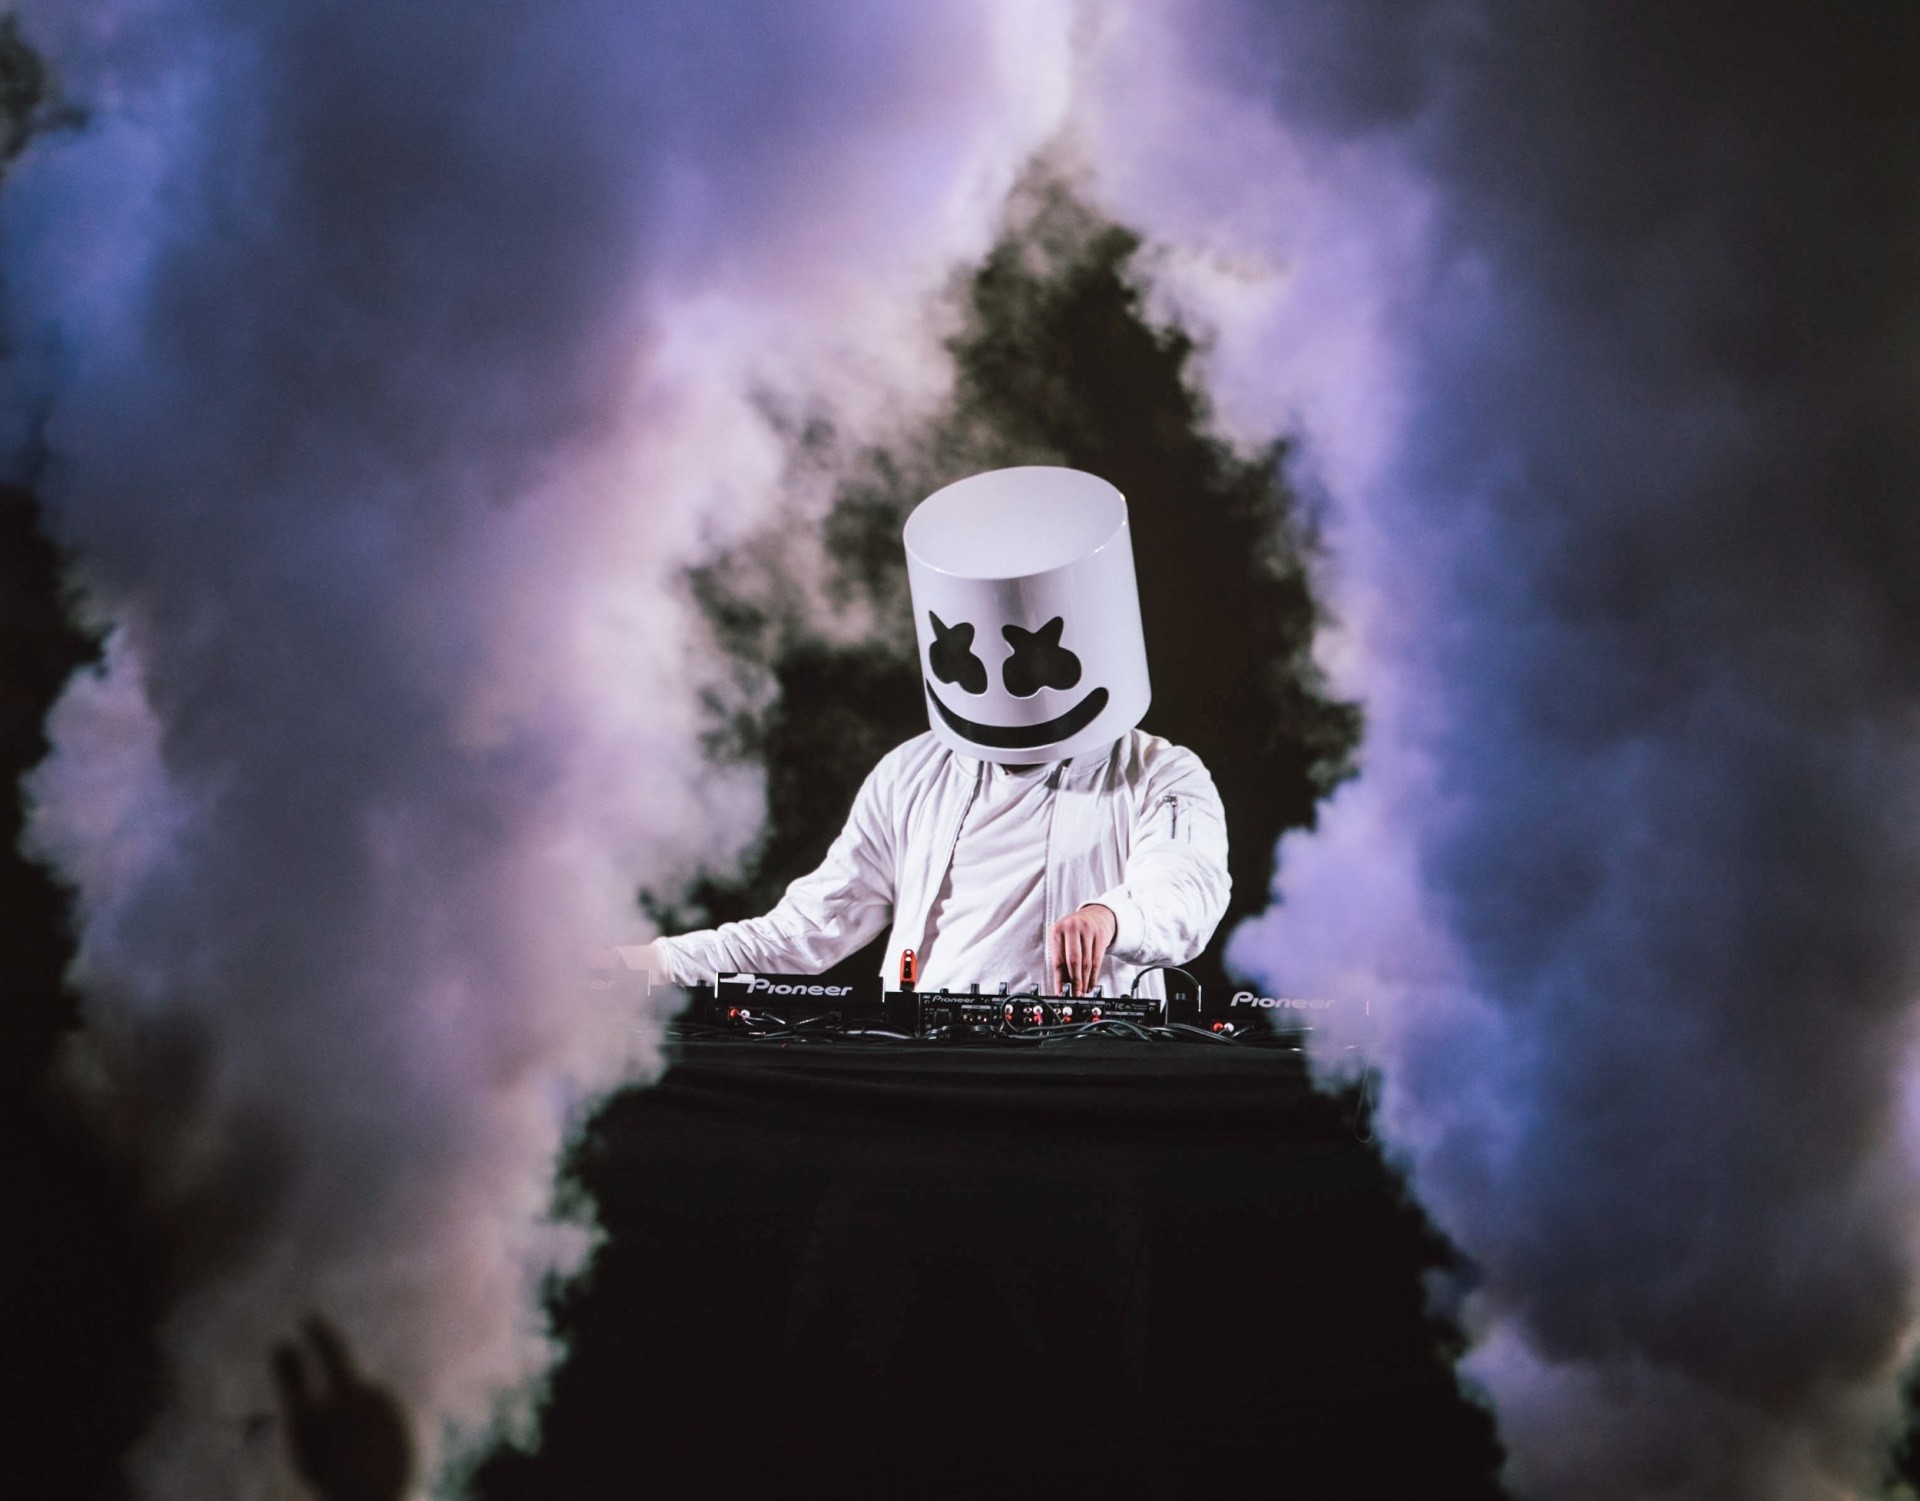 Download Marshmello Performing Live Hd Wallpaper 64953 1920x1501 Px